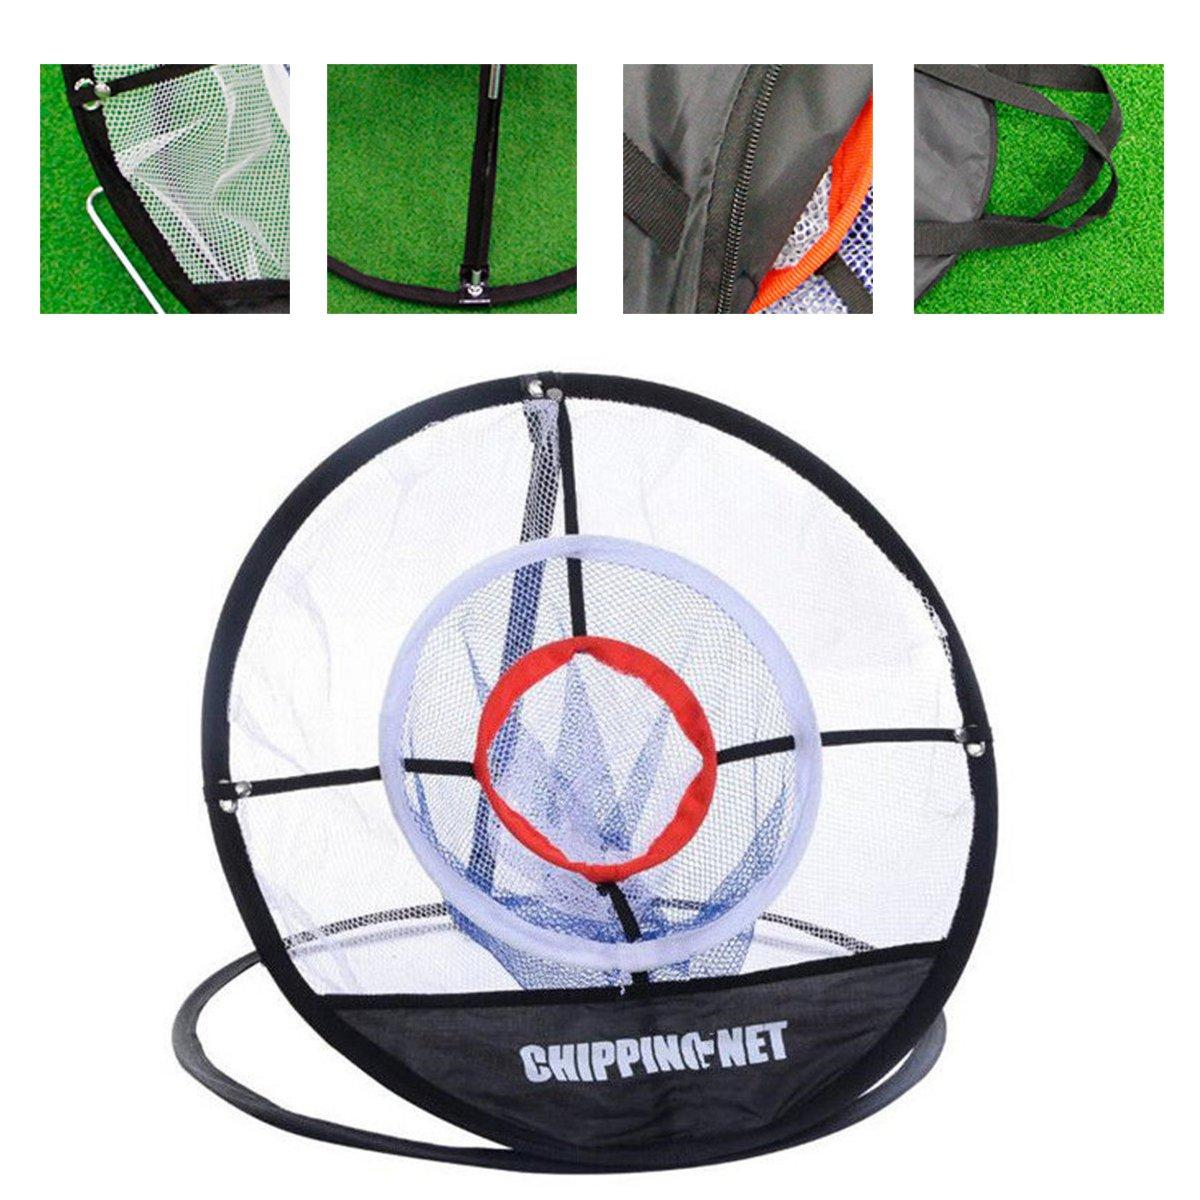 Golf Chipping Pitching Practice Net Hitting Cage Outils d'aide à la formation en plein air - 1